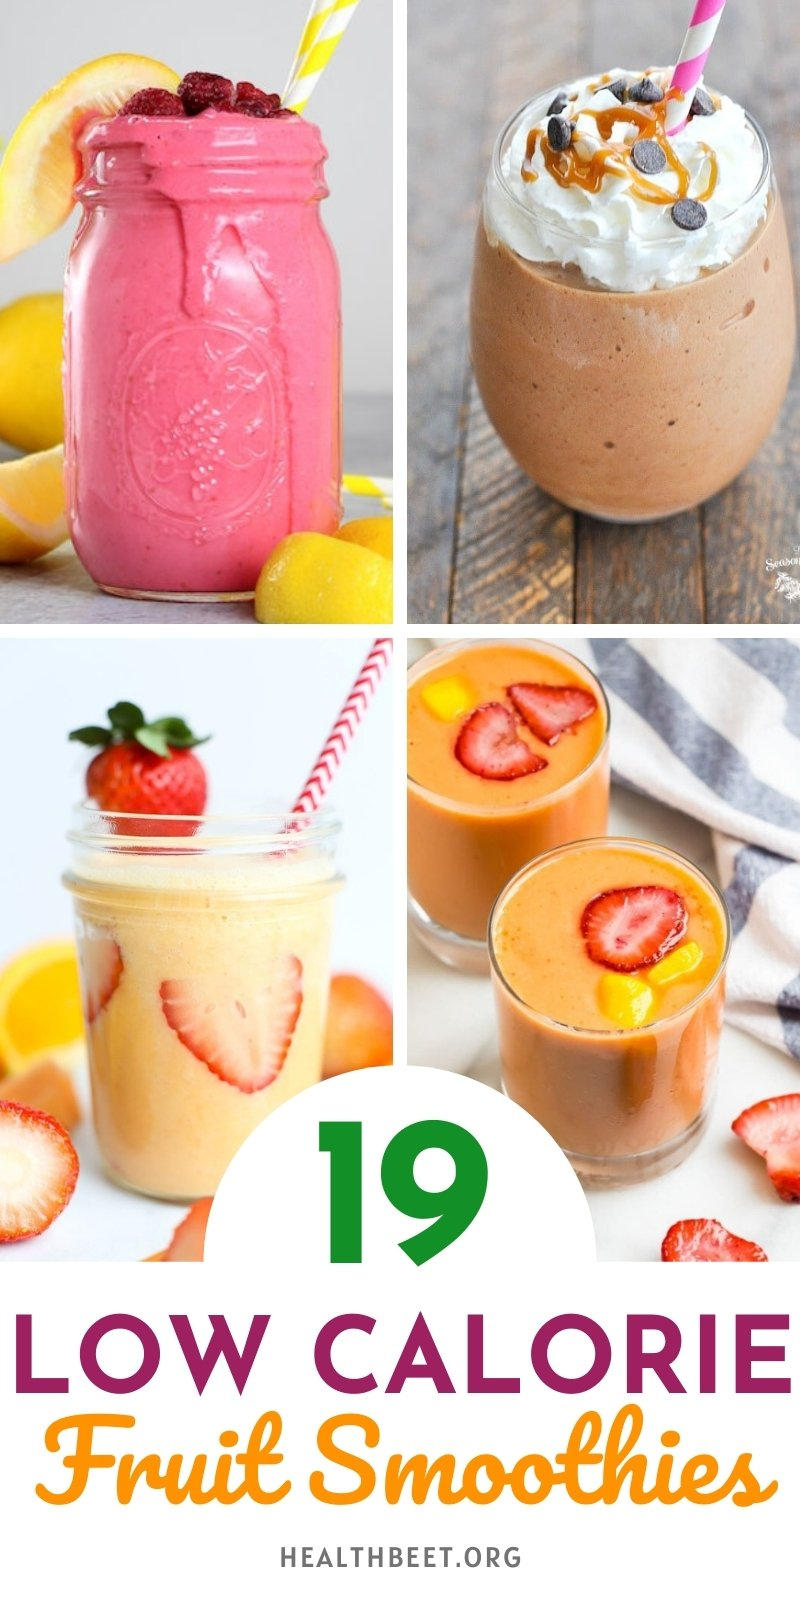 19 Low calorie Fruit Smoothies